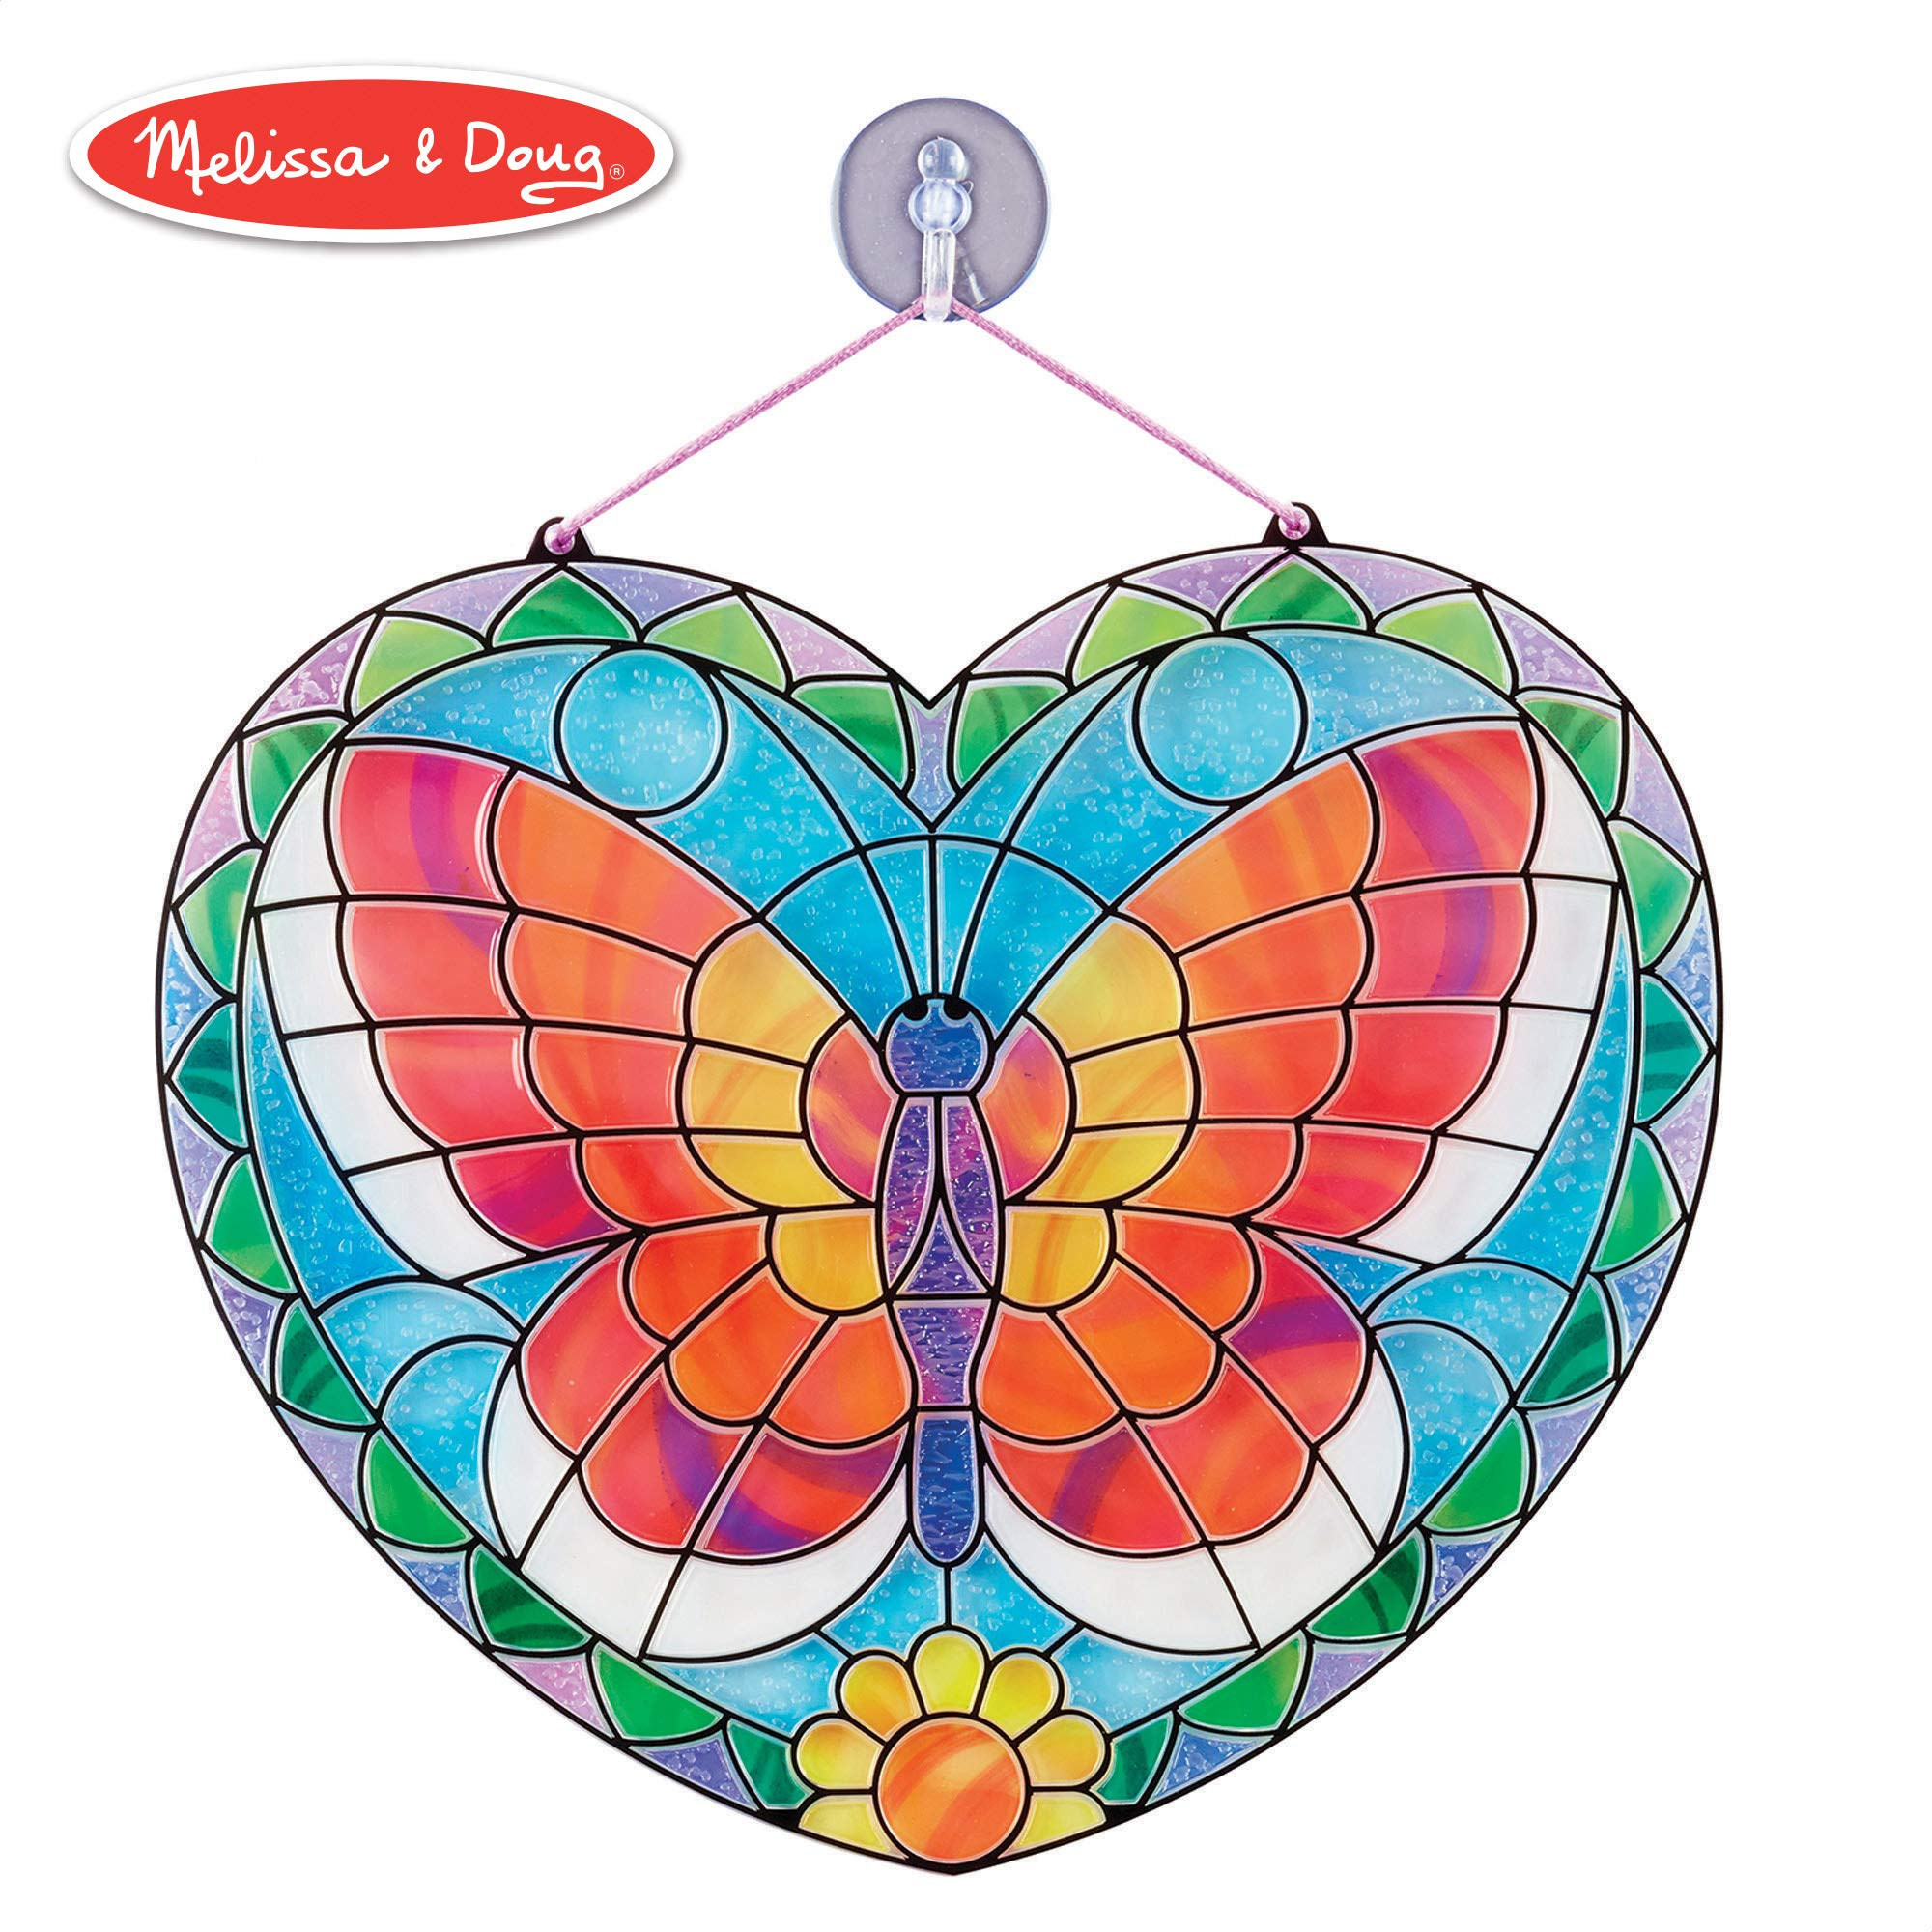 Melissa & Doug Stained Glass Made Easy Activity Kit, Arts and Crafts, Develops Problem Solving Skills, Butterfly, 140+ Stickers, 10.5'' H x 10'' W x 0.25'' L, Multi-color by Melissa & Doug